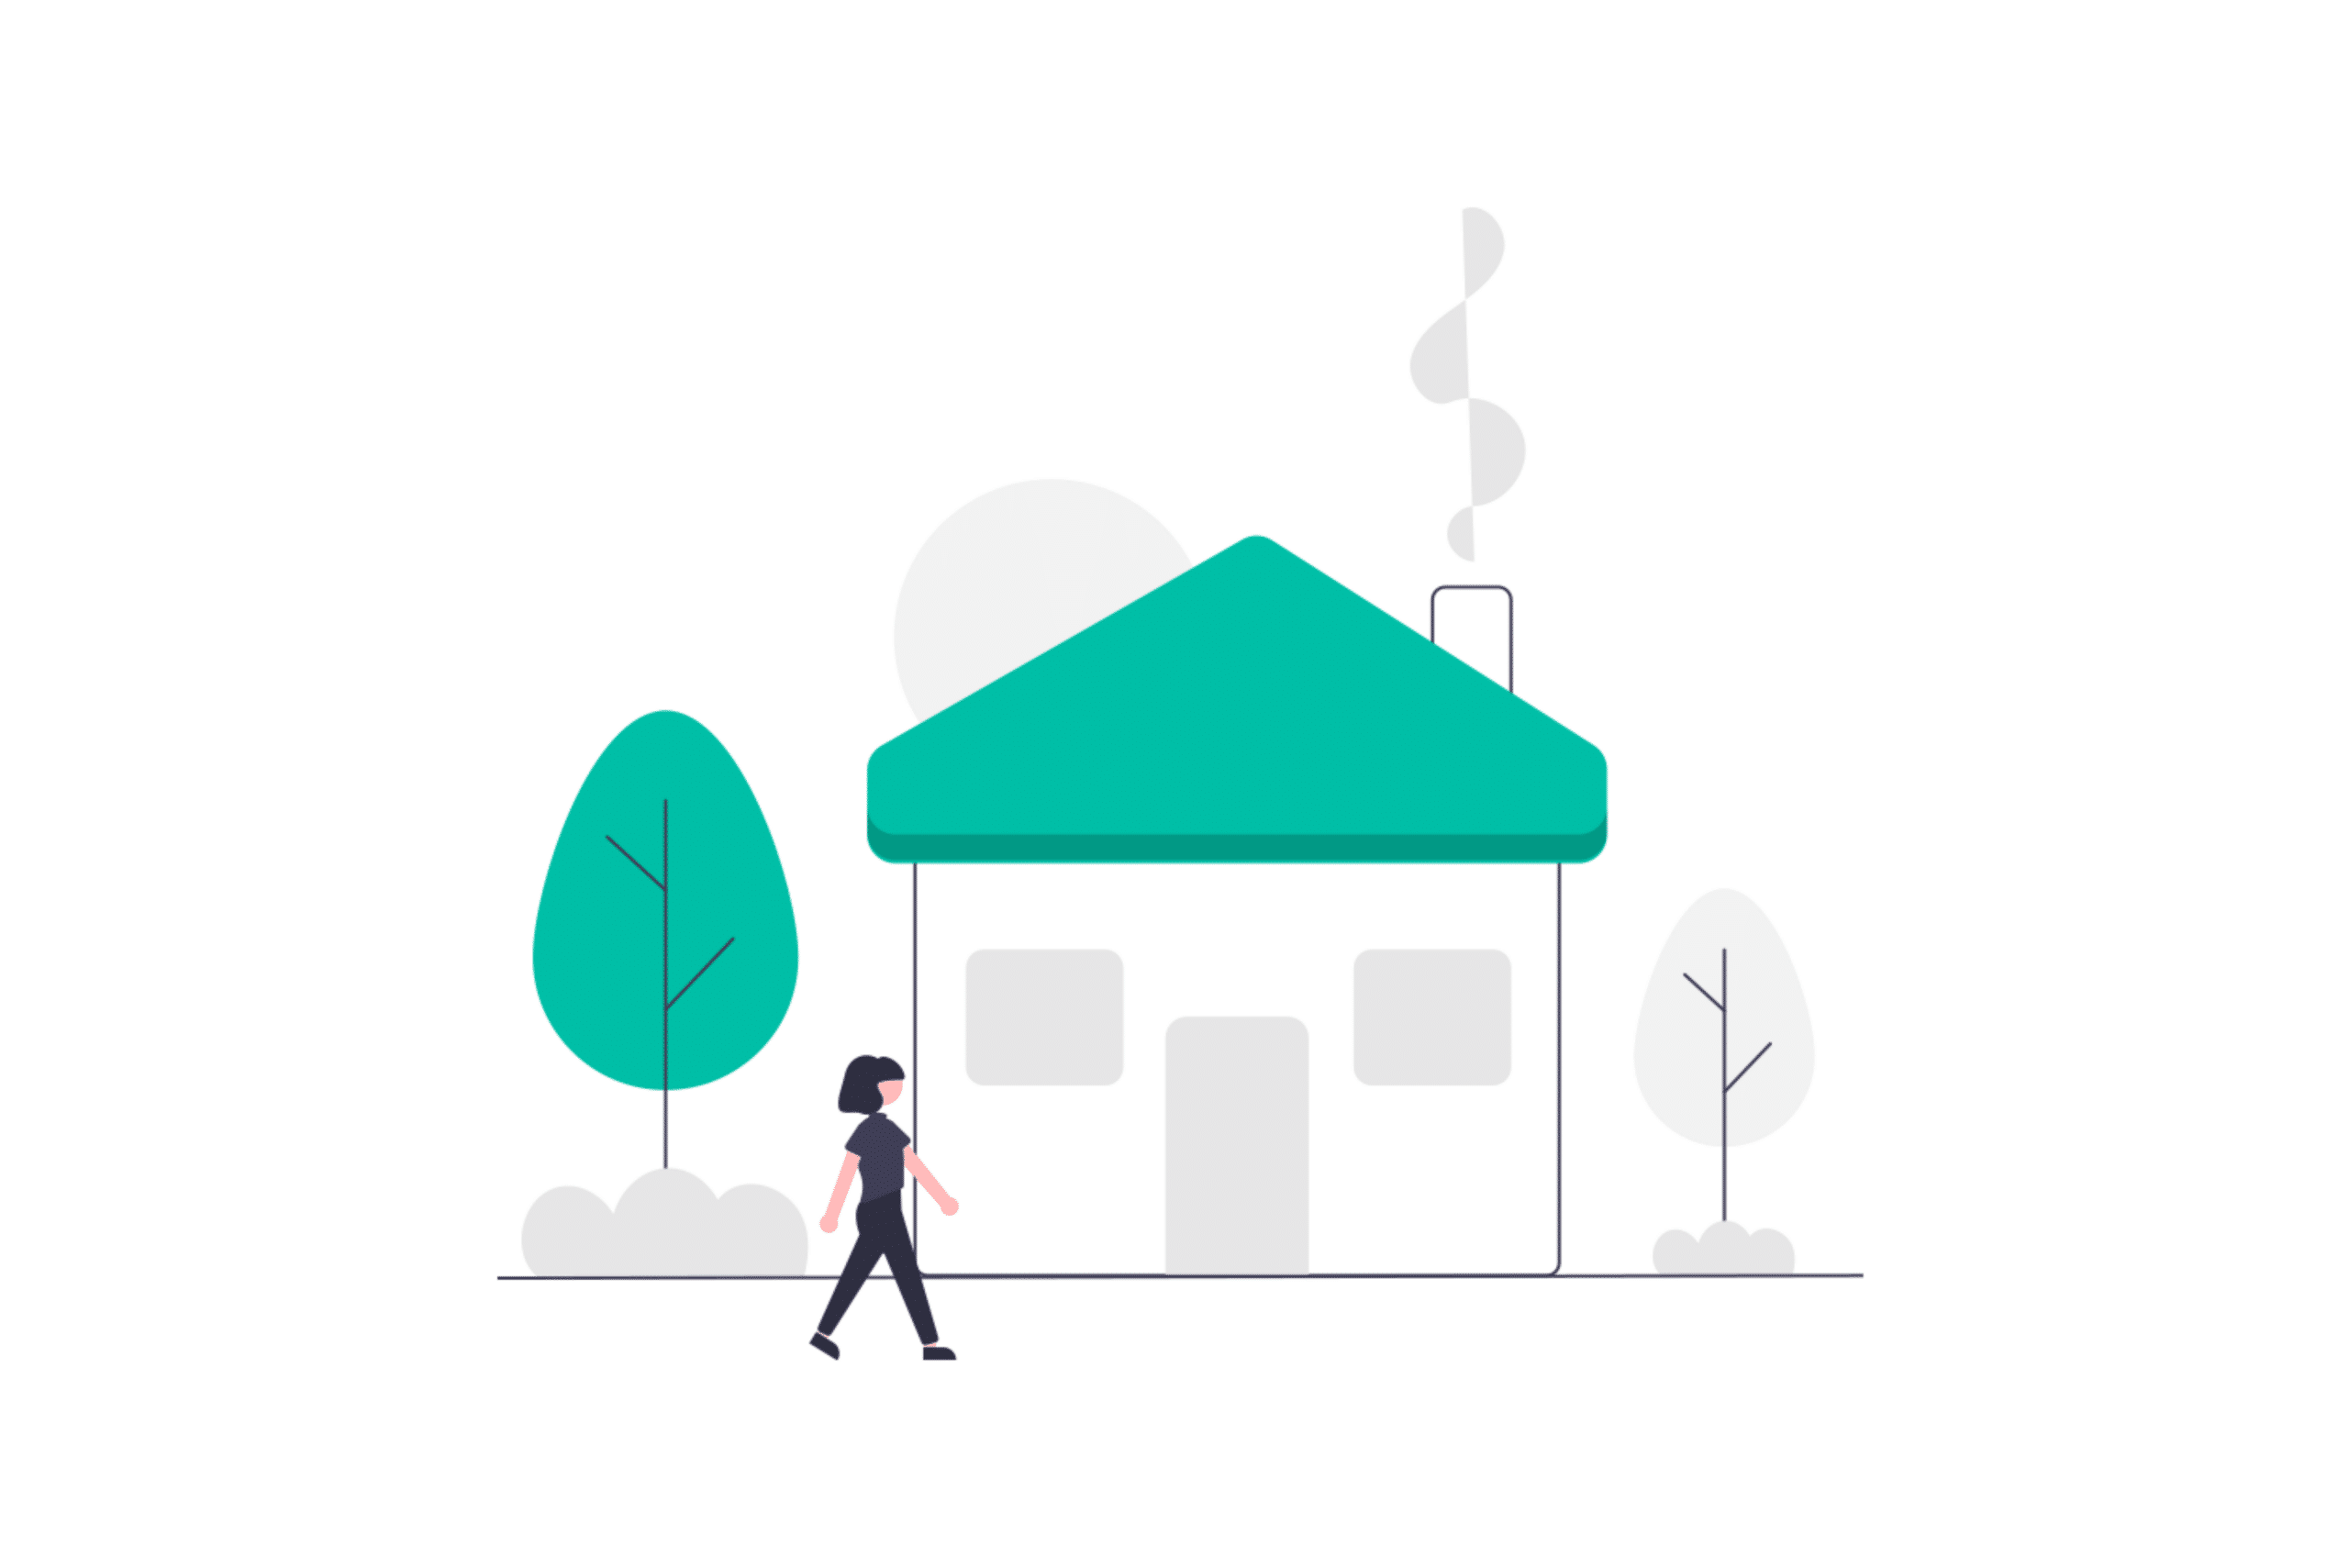 illustration about a landlord admiring his new property